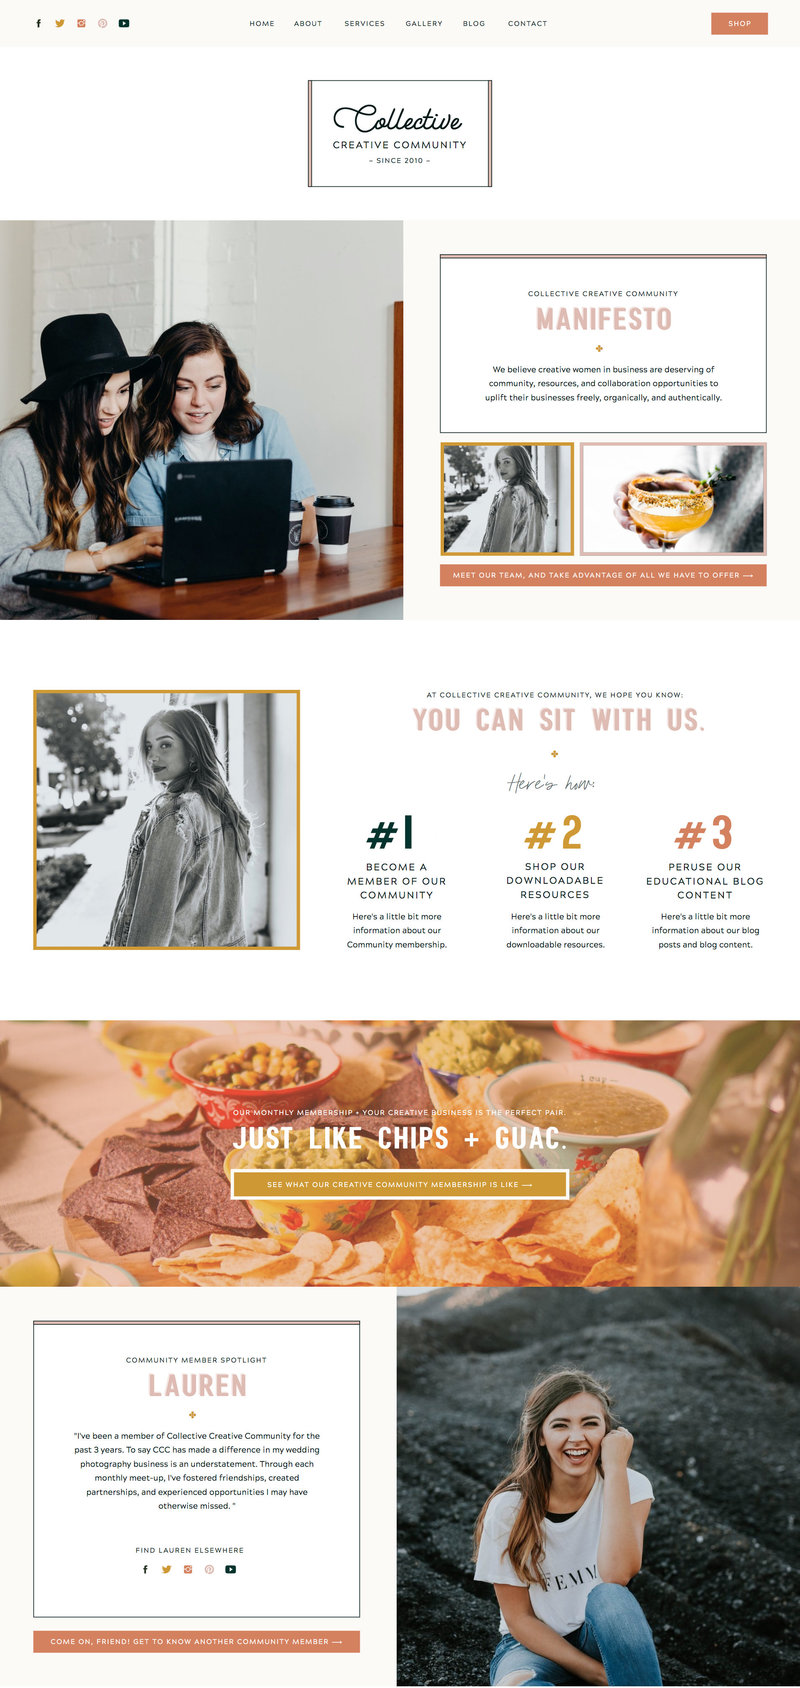 With Grace and Gold - Best Showit Design Designs Designer Designers Theme Themes Template Templates Web Website Websites for Photographers Creatives Small Business Owners - 40